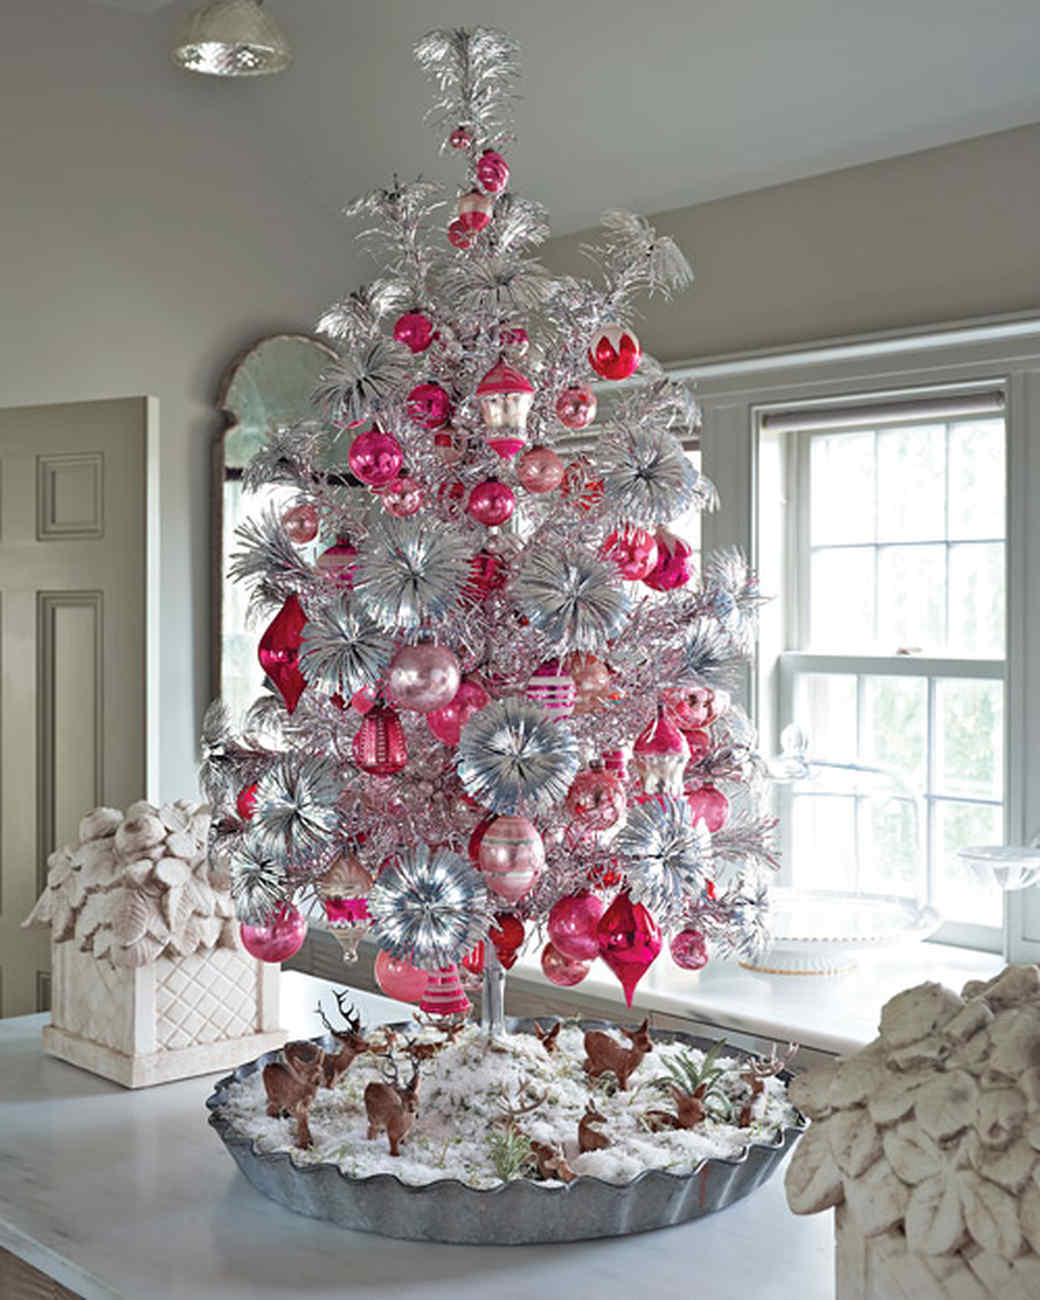 28 creative christmas tree decorating ideas martha stewart - White Christmas Tree Decorations